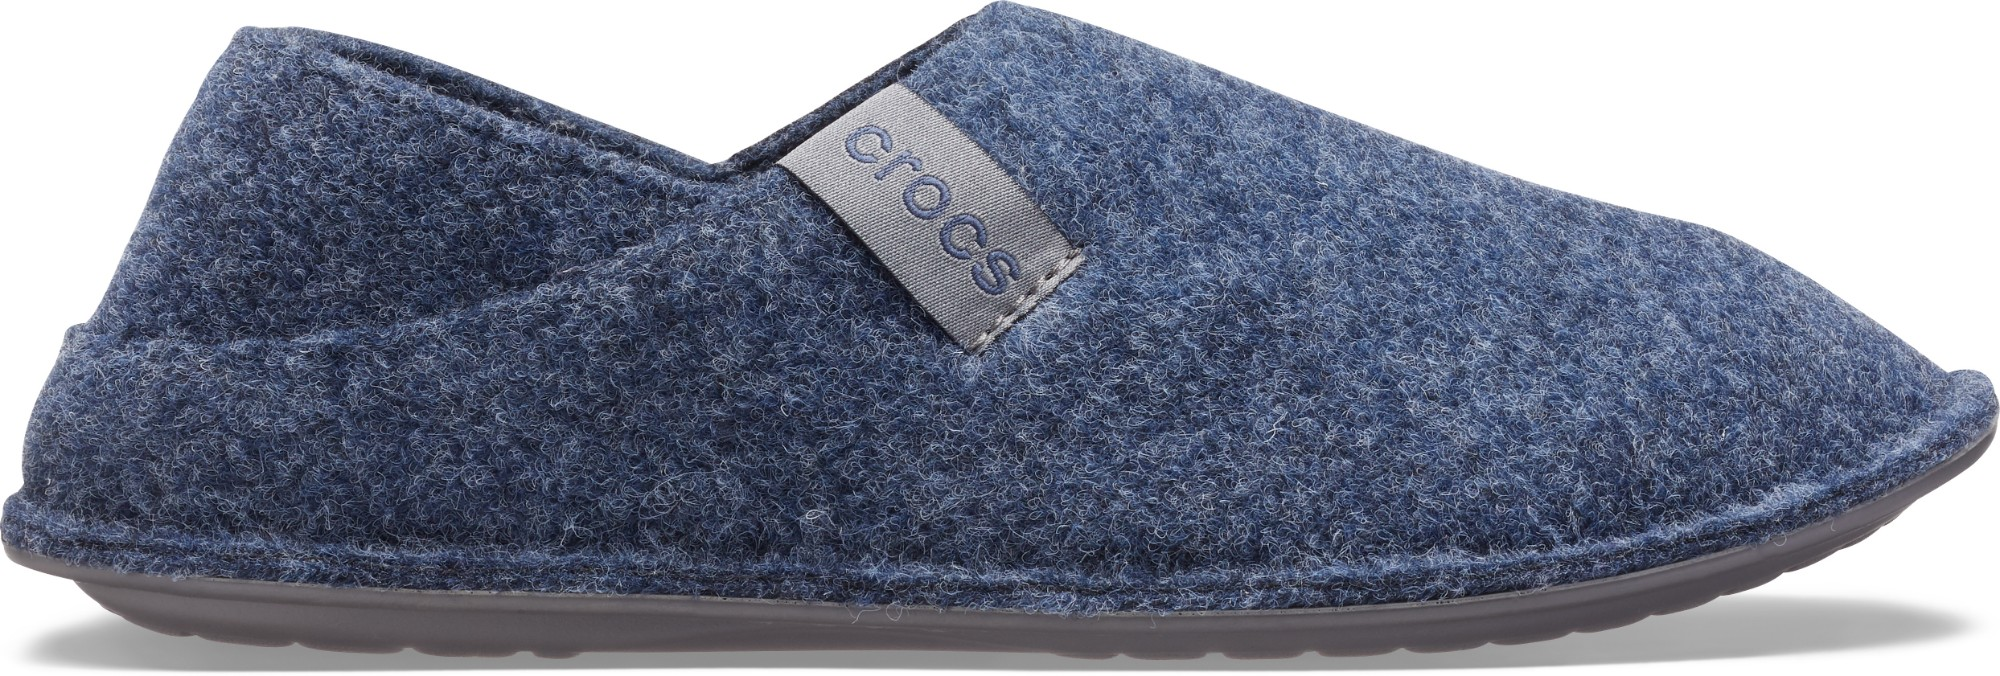 Crocs™ Classic Convertible Slipper Navy/Charcoal 44,5